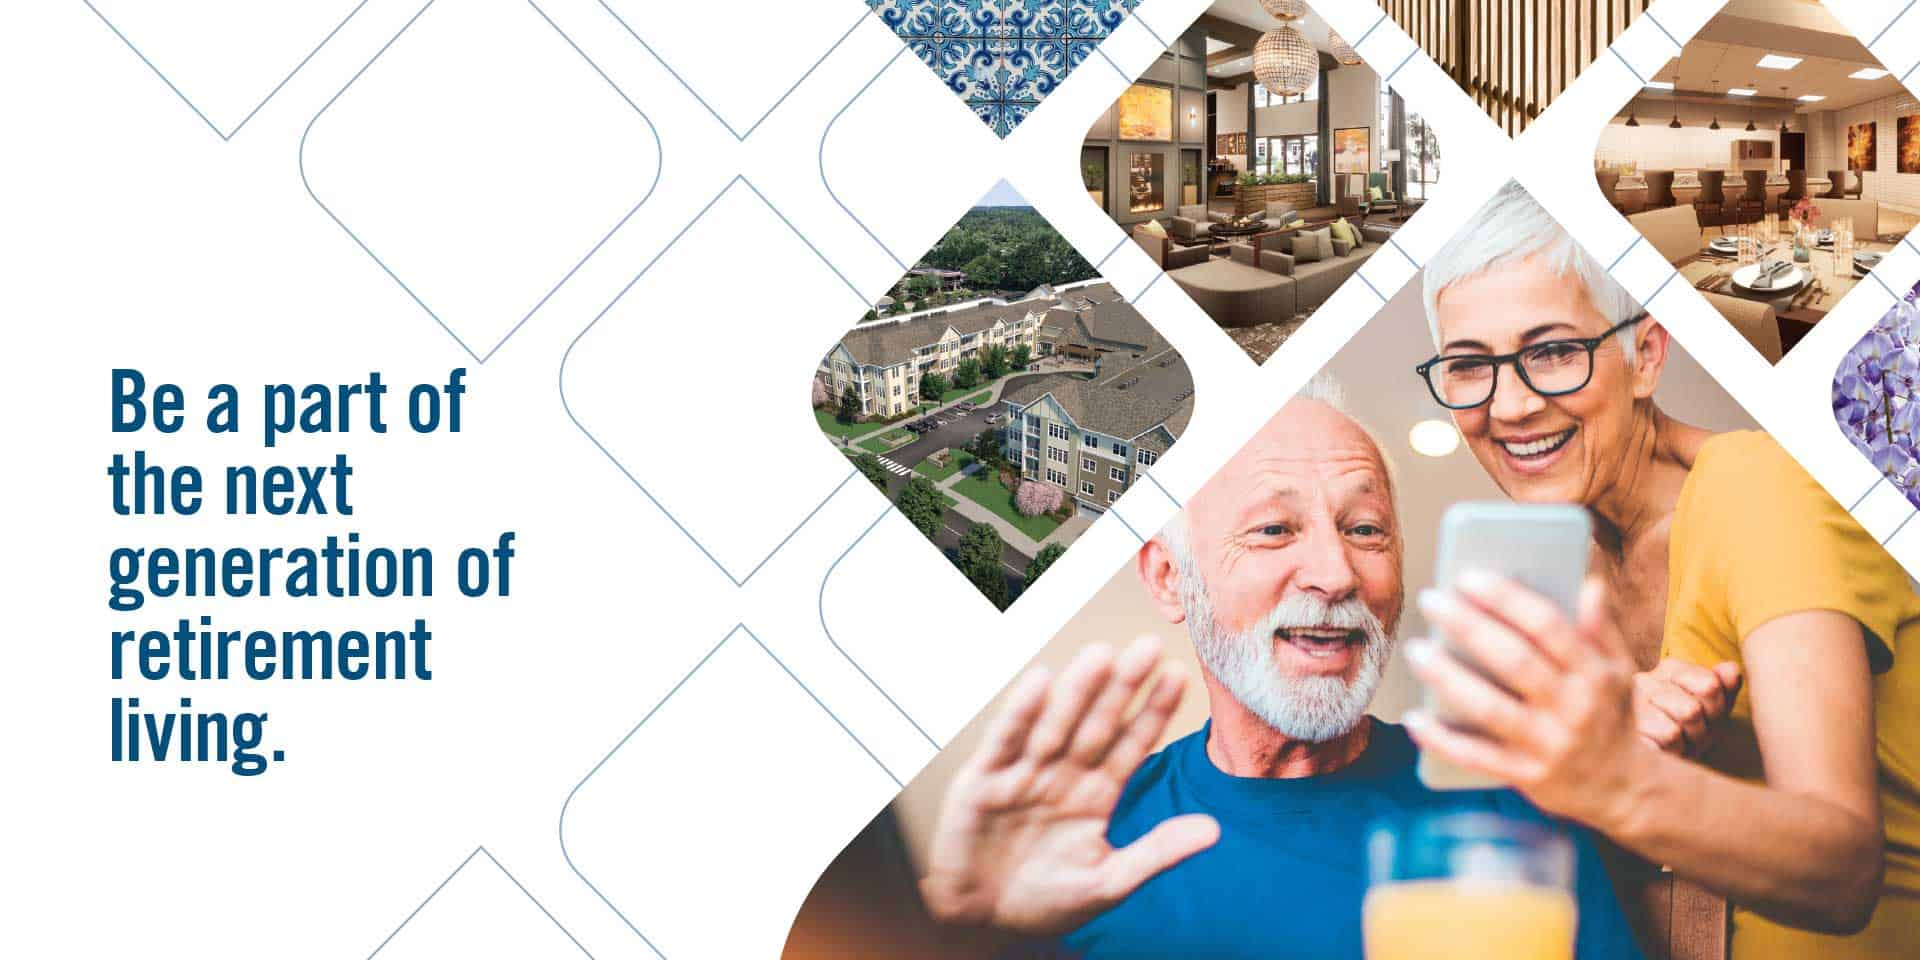 Be a part of the next generation of retirement living.